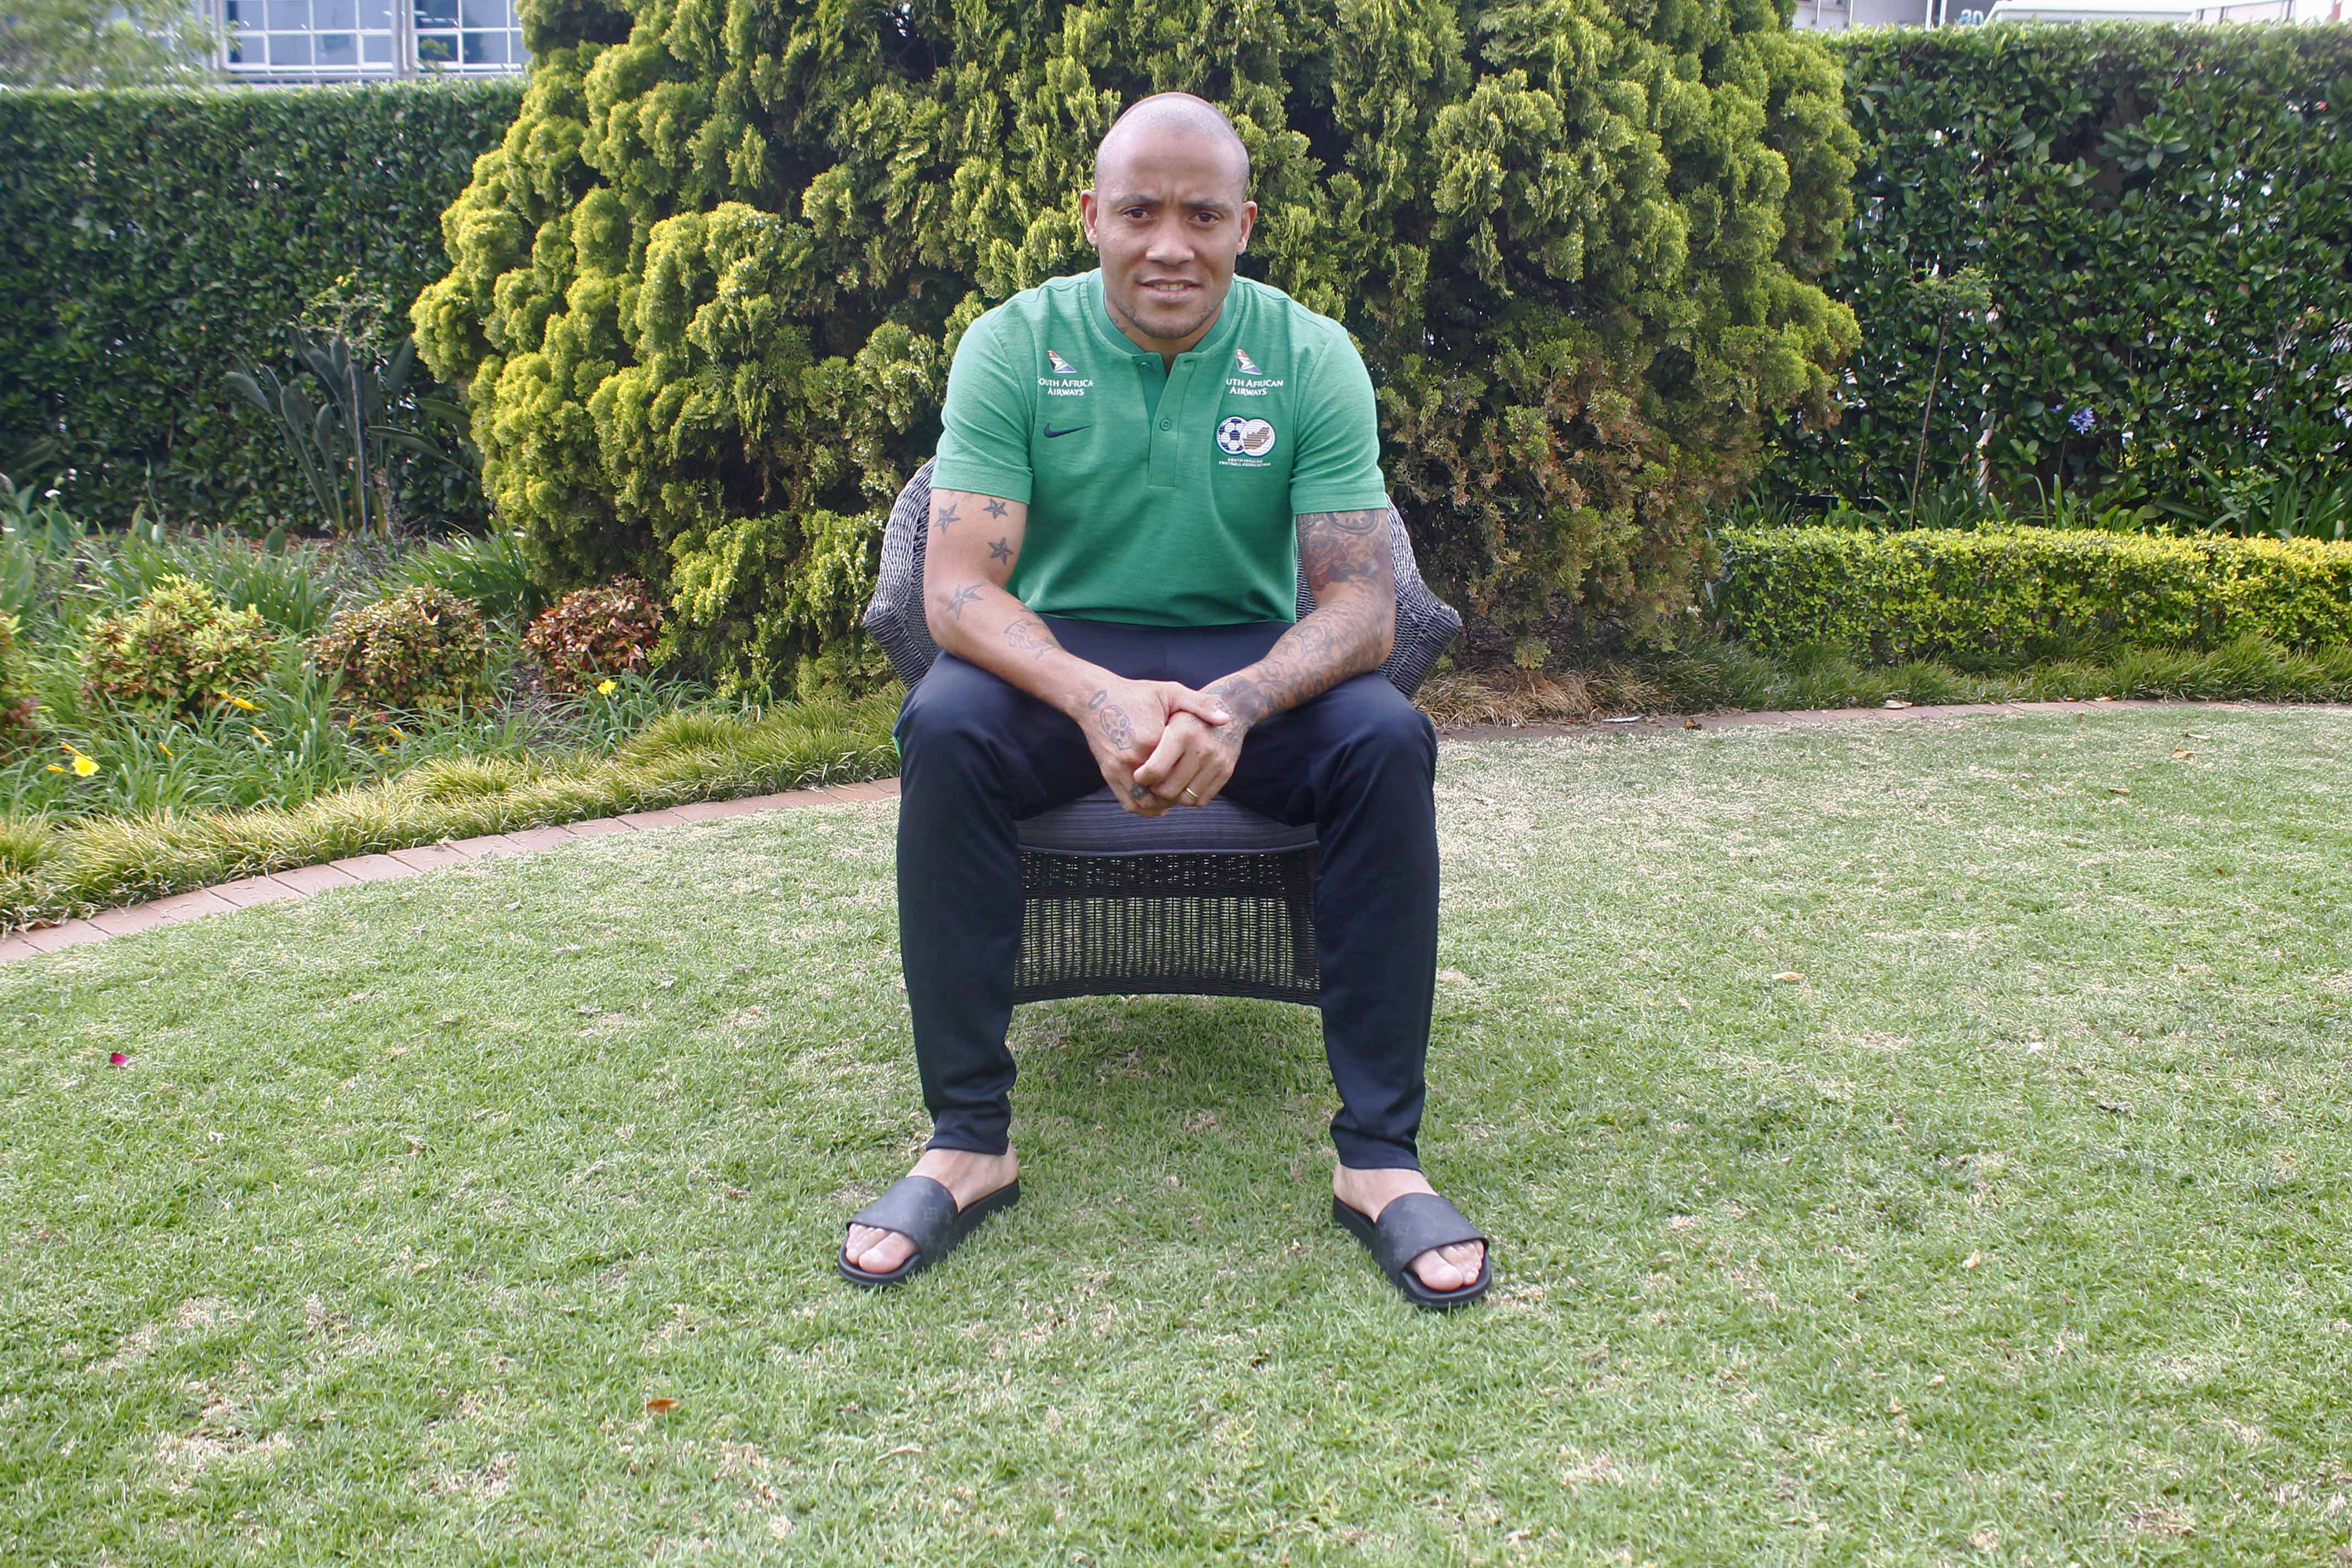 10 October 2018: Bafana Bafana player Dino Ndlovu at the Southern Sun hotel in Sandton.